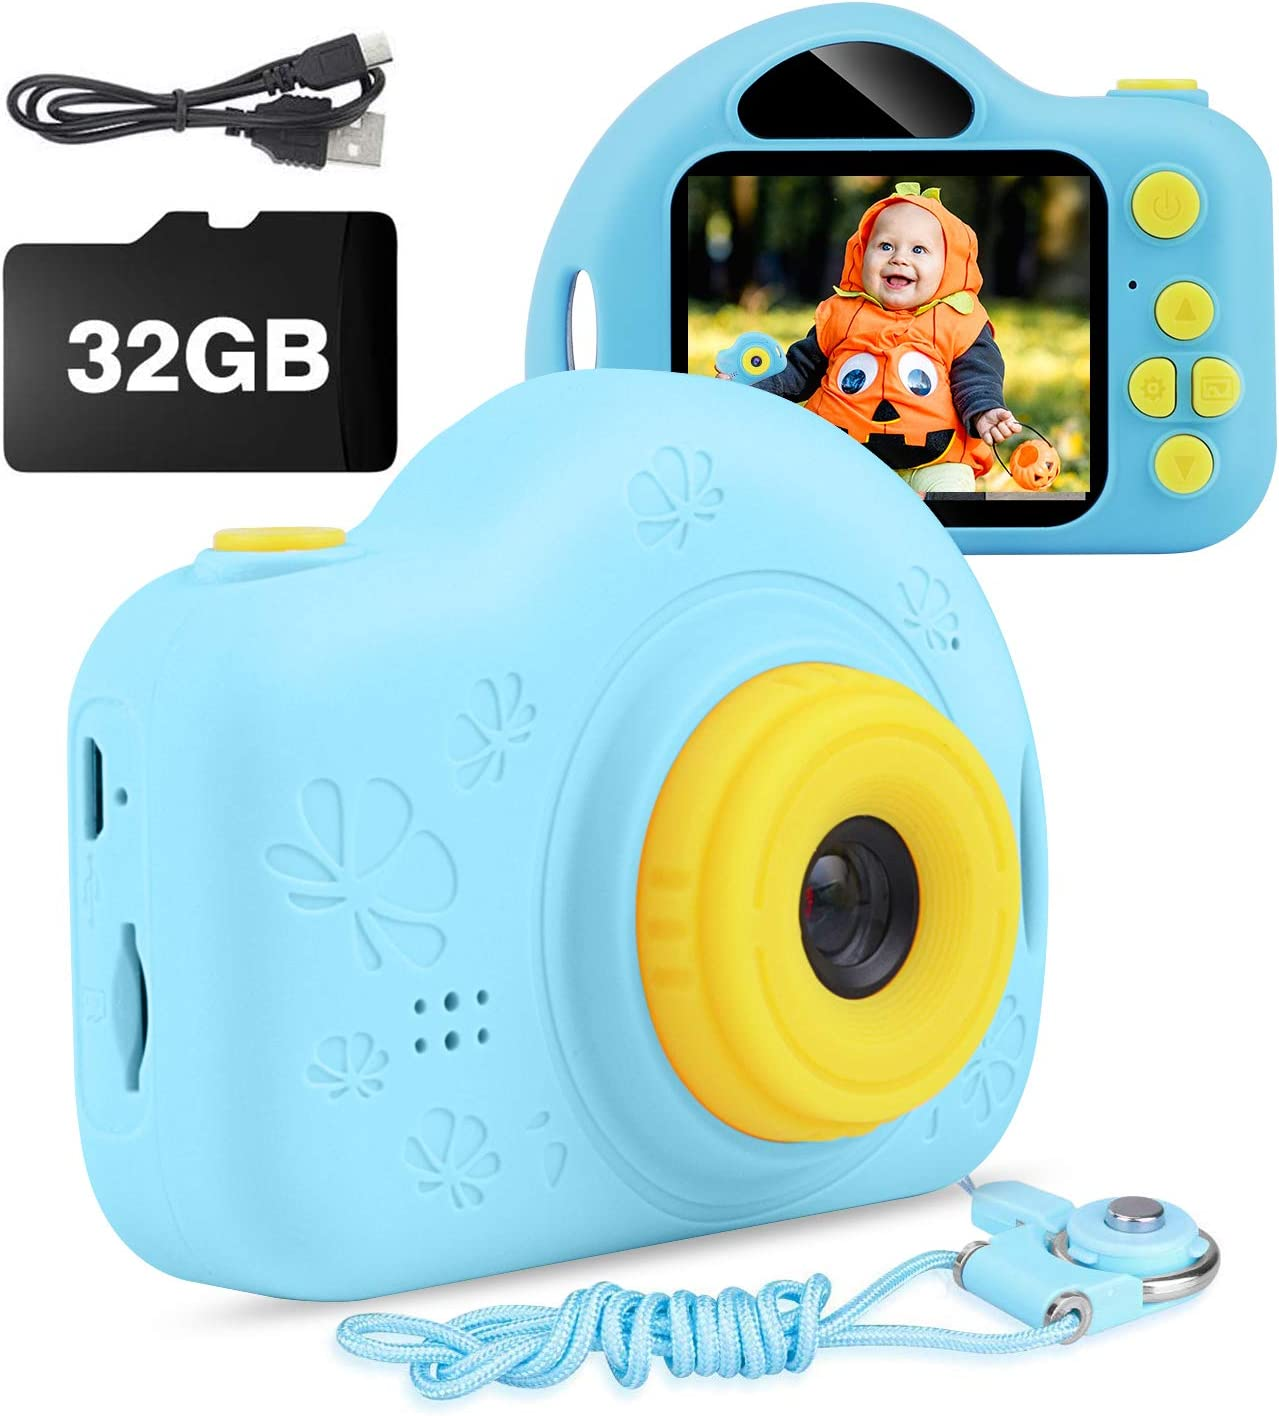 AIMASON Kids Camera, Digital Video Camera for Kids, Toddlers, Toy, Boys and Girls, Age 3 4 5 6 7 8 9 10 with 32GB SD Card Blue